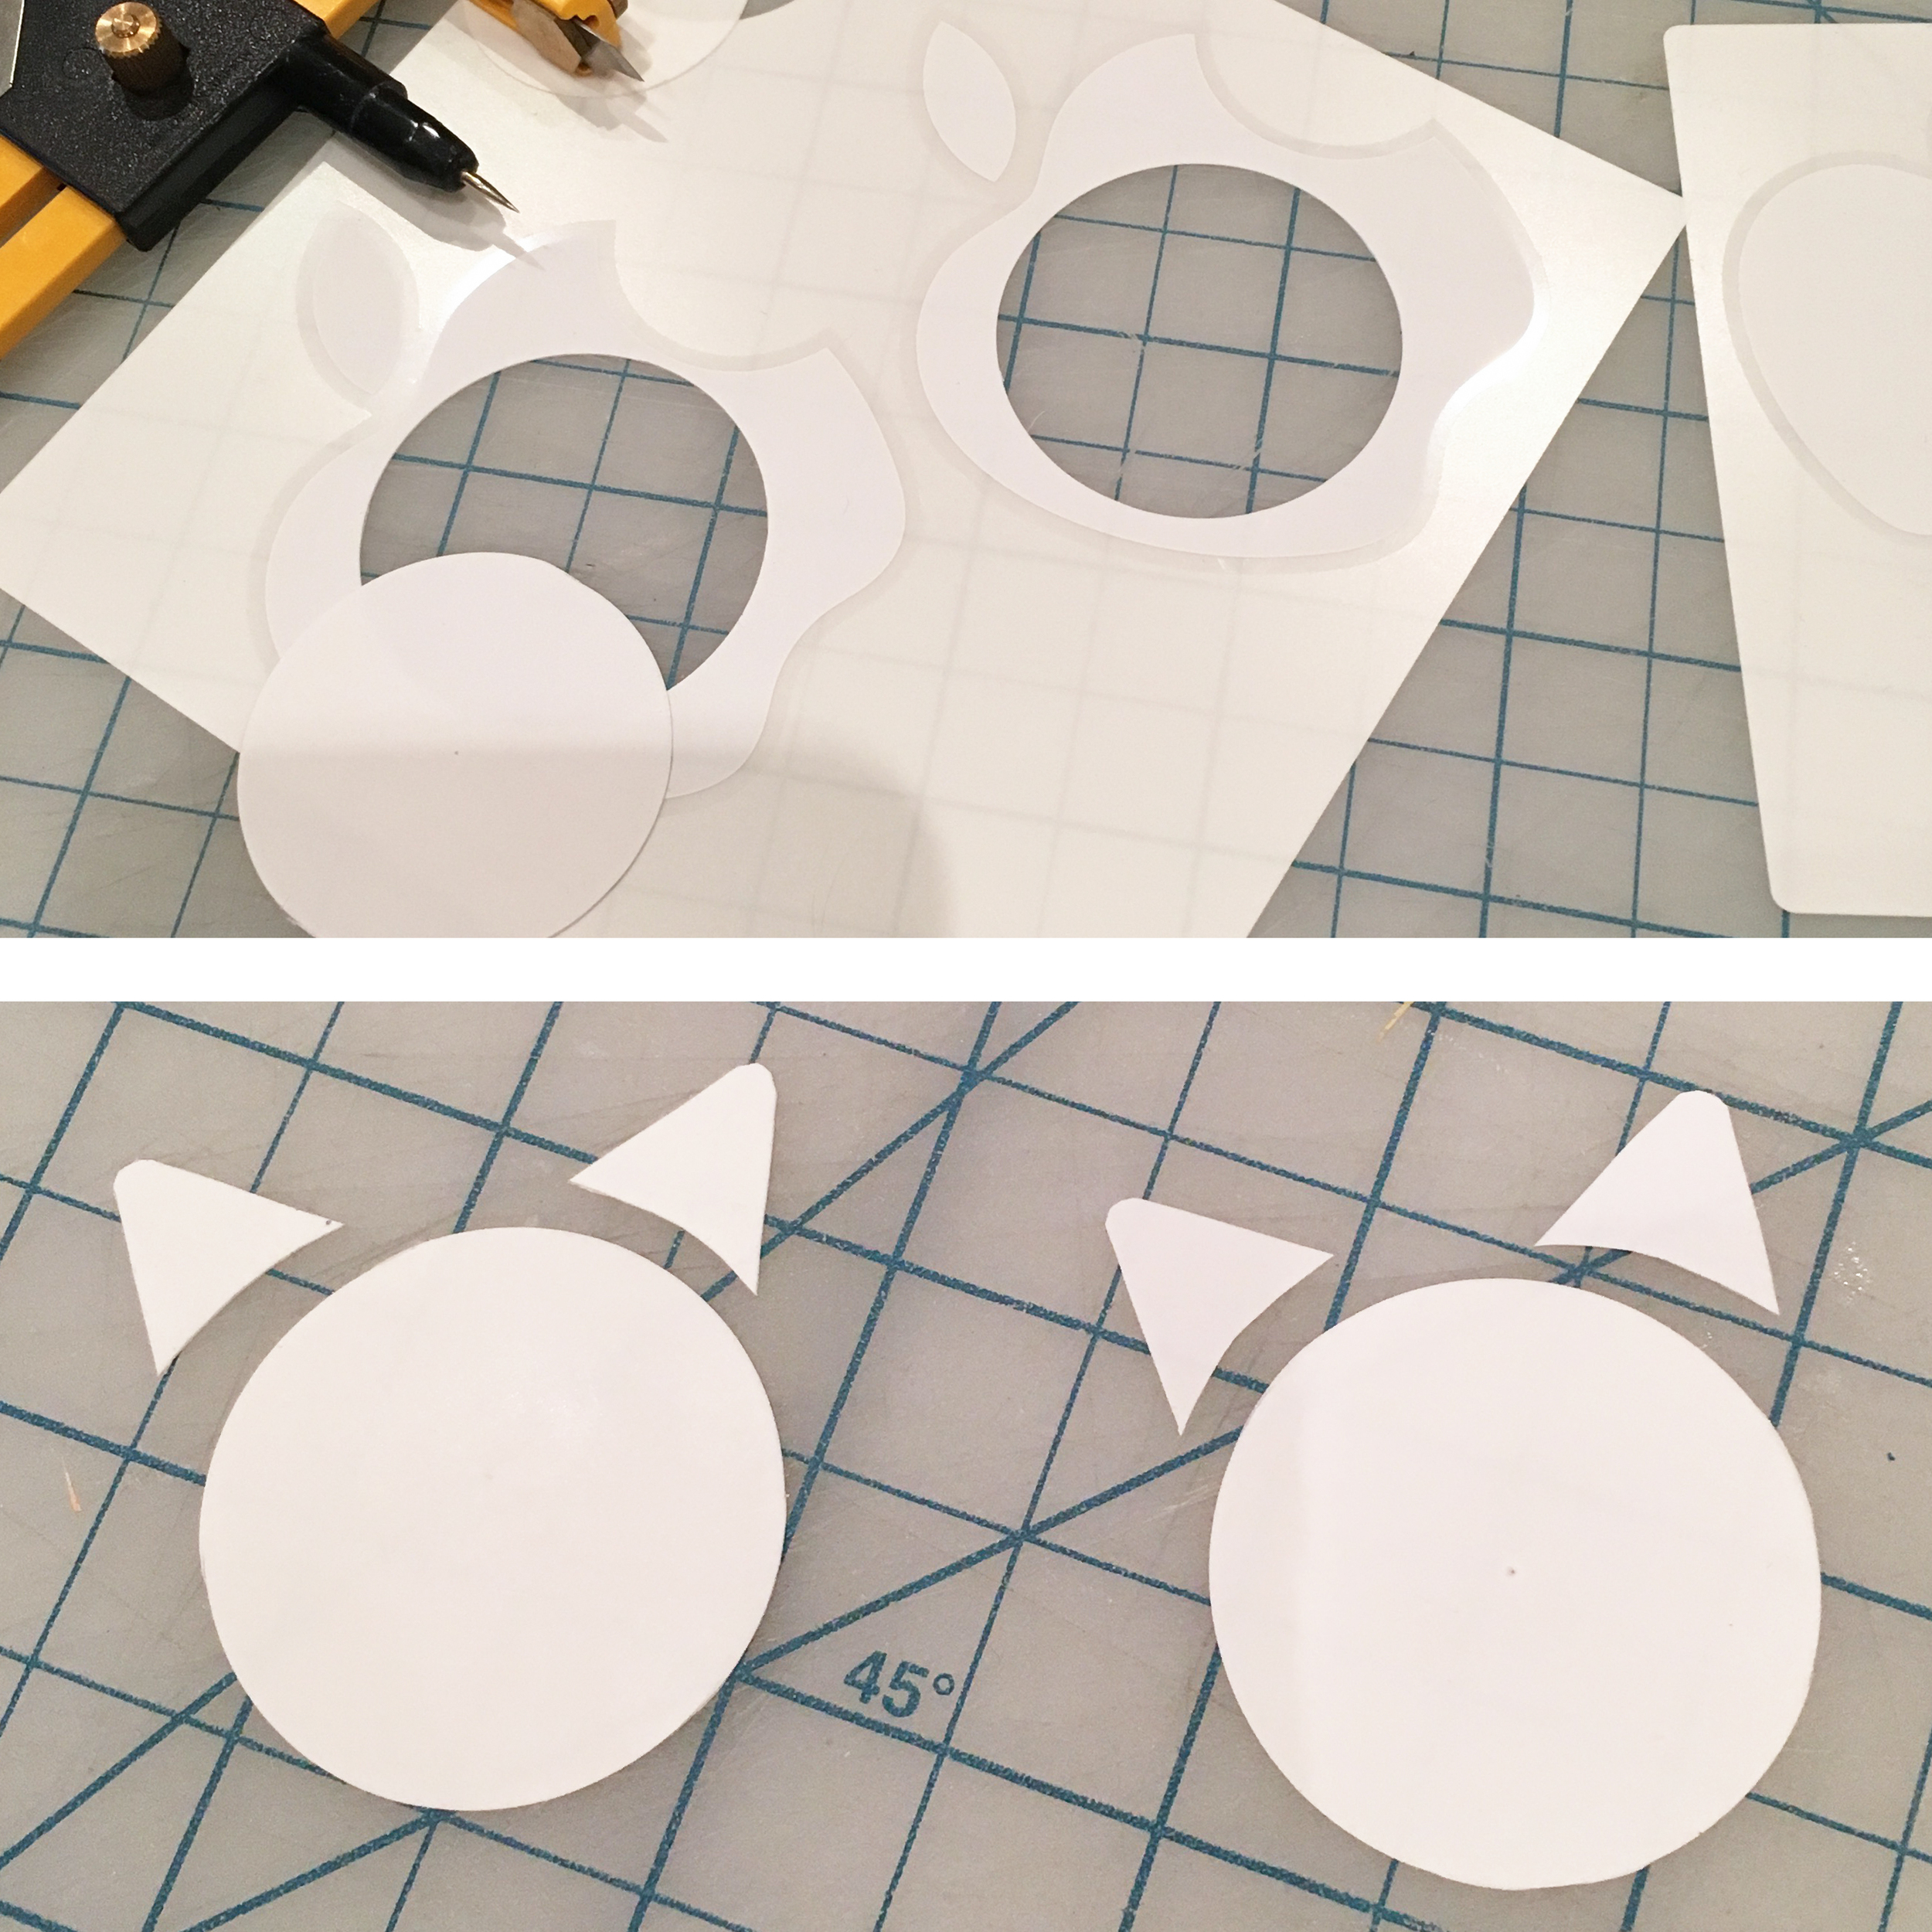 Use those Apple stickers and make a cat logo!